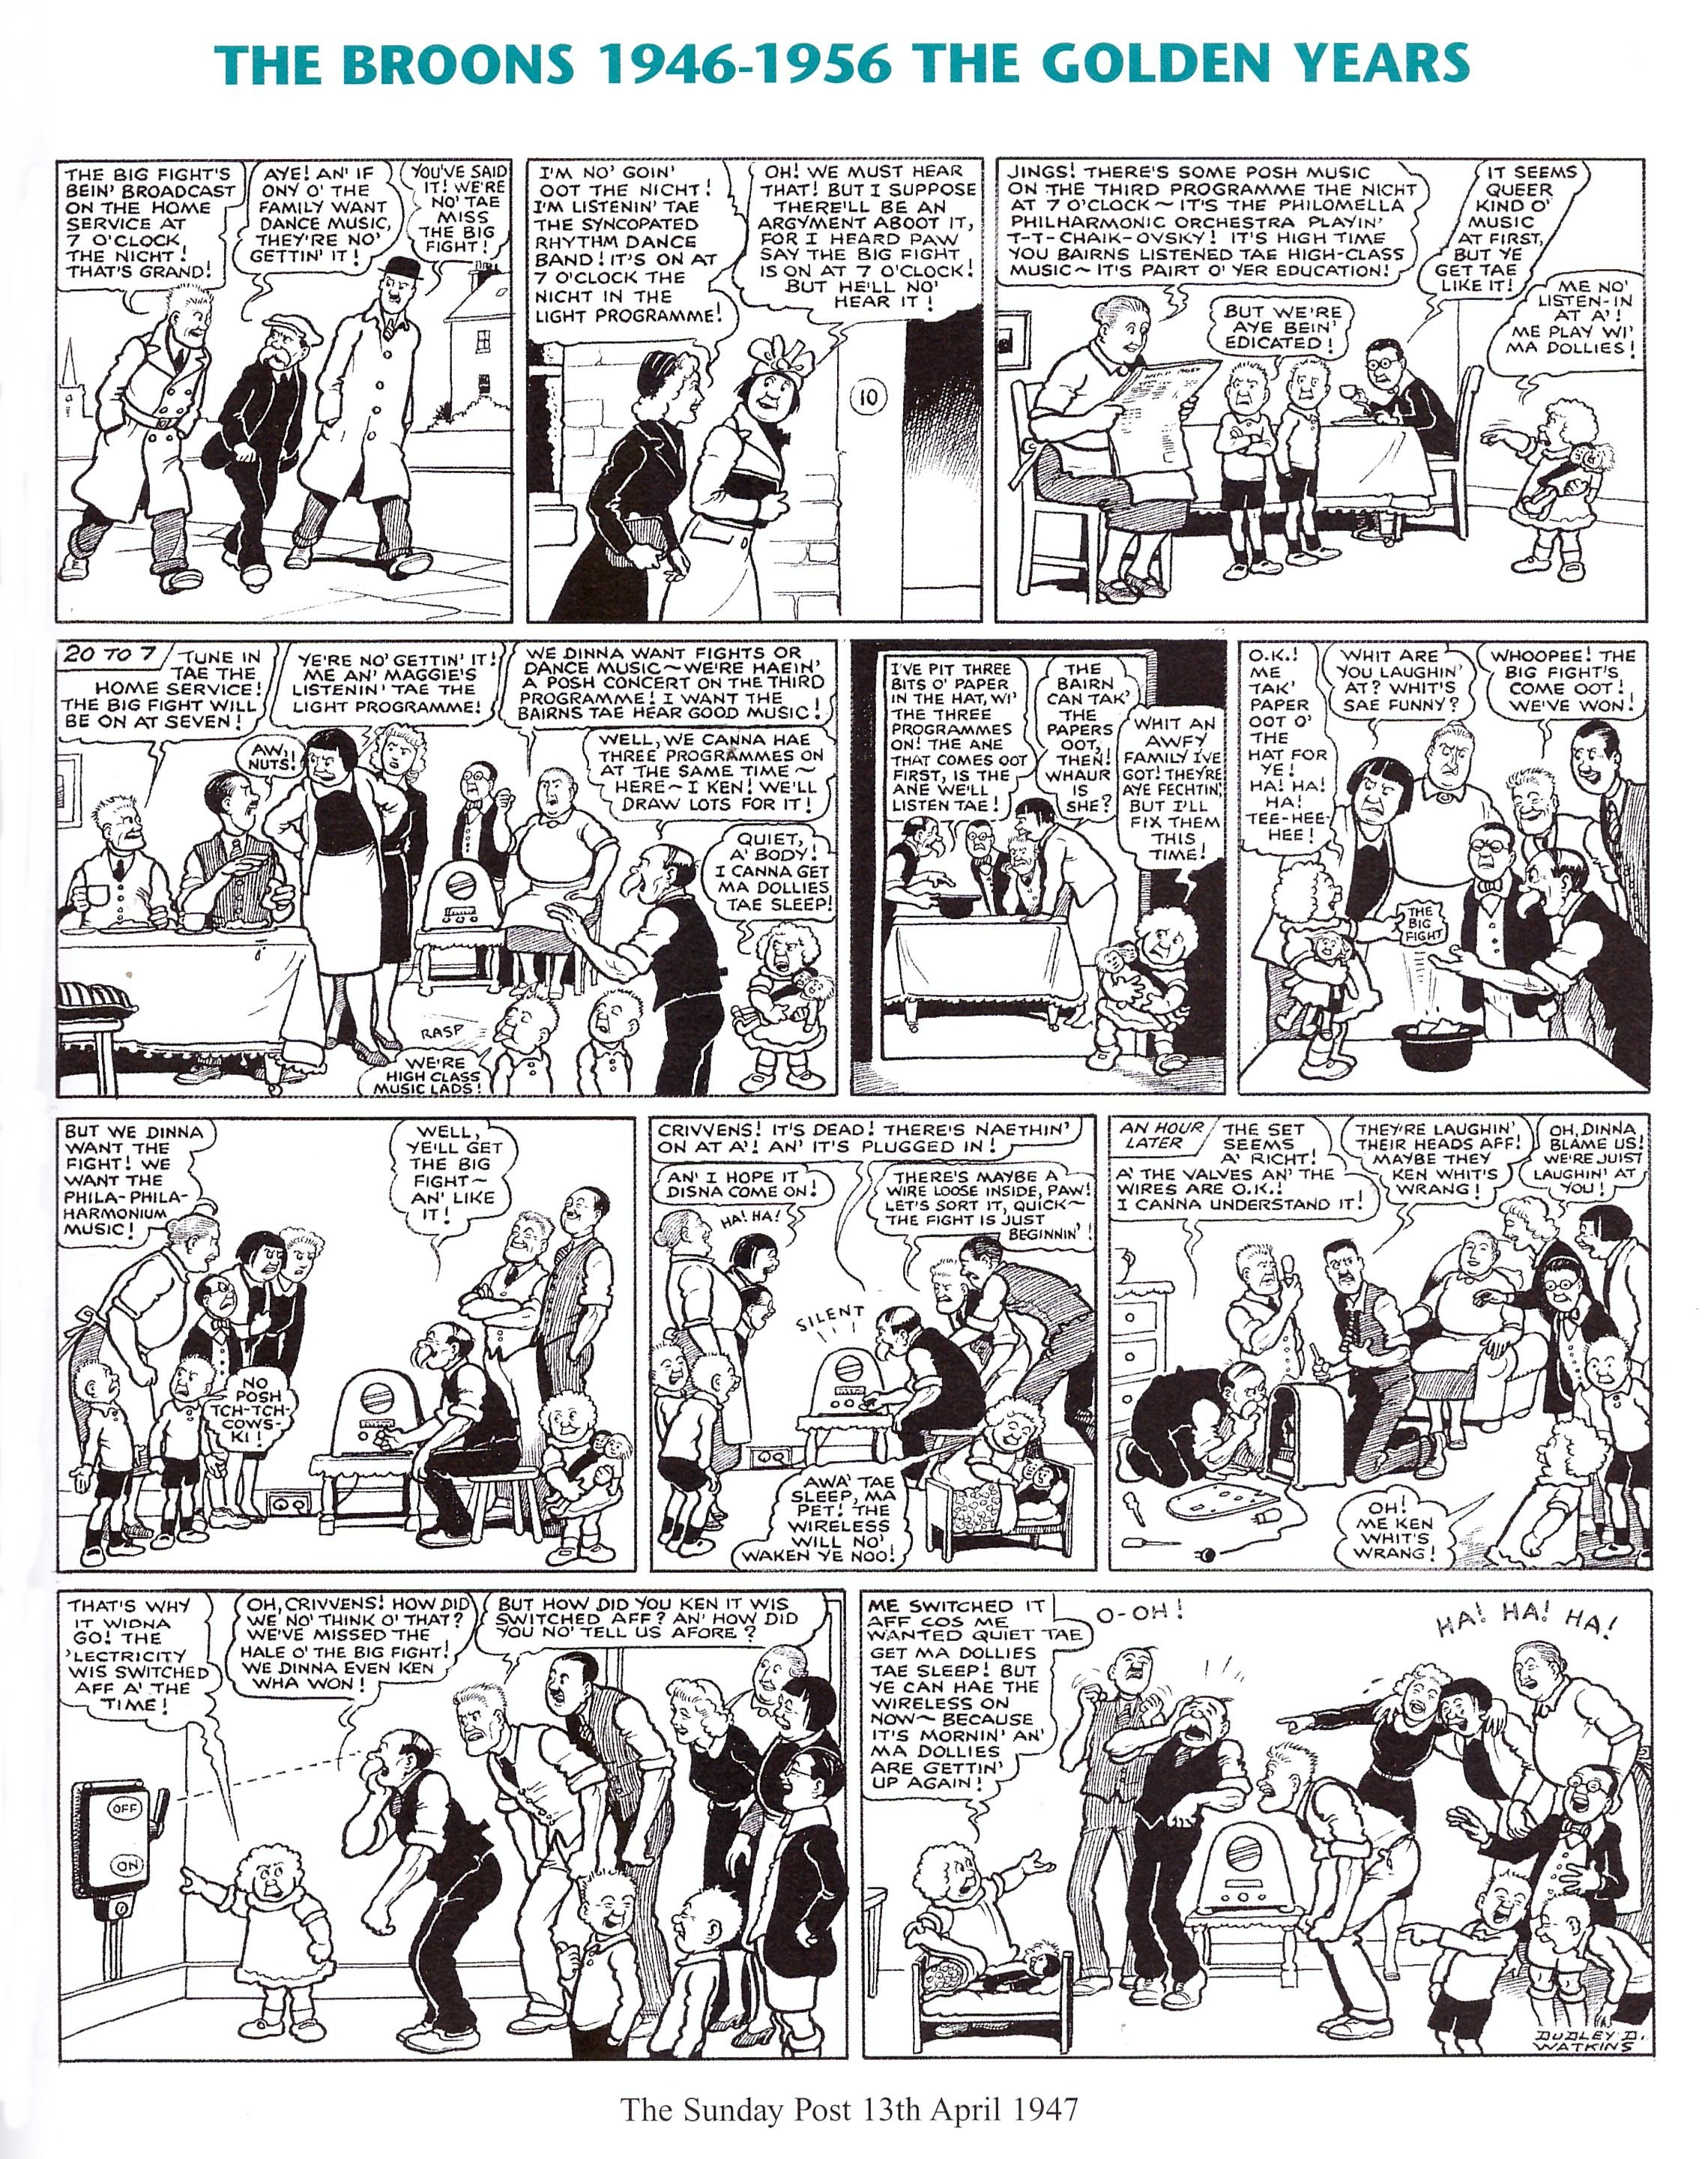 The Broons and Oor Wullie the Golden Years review